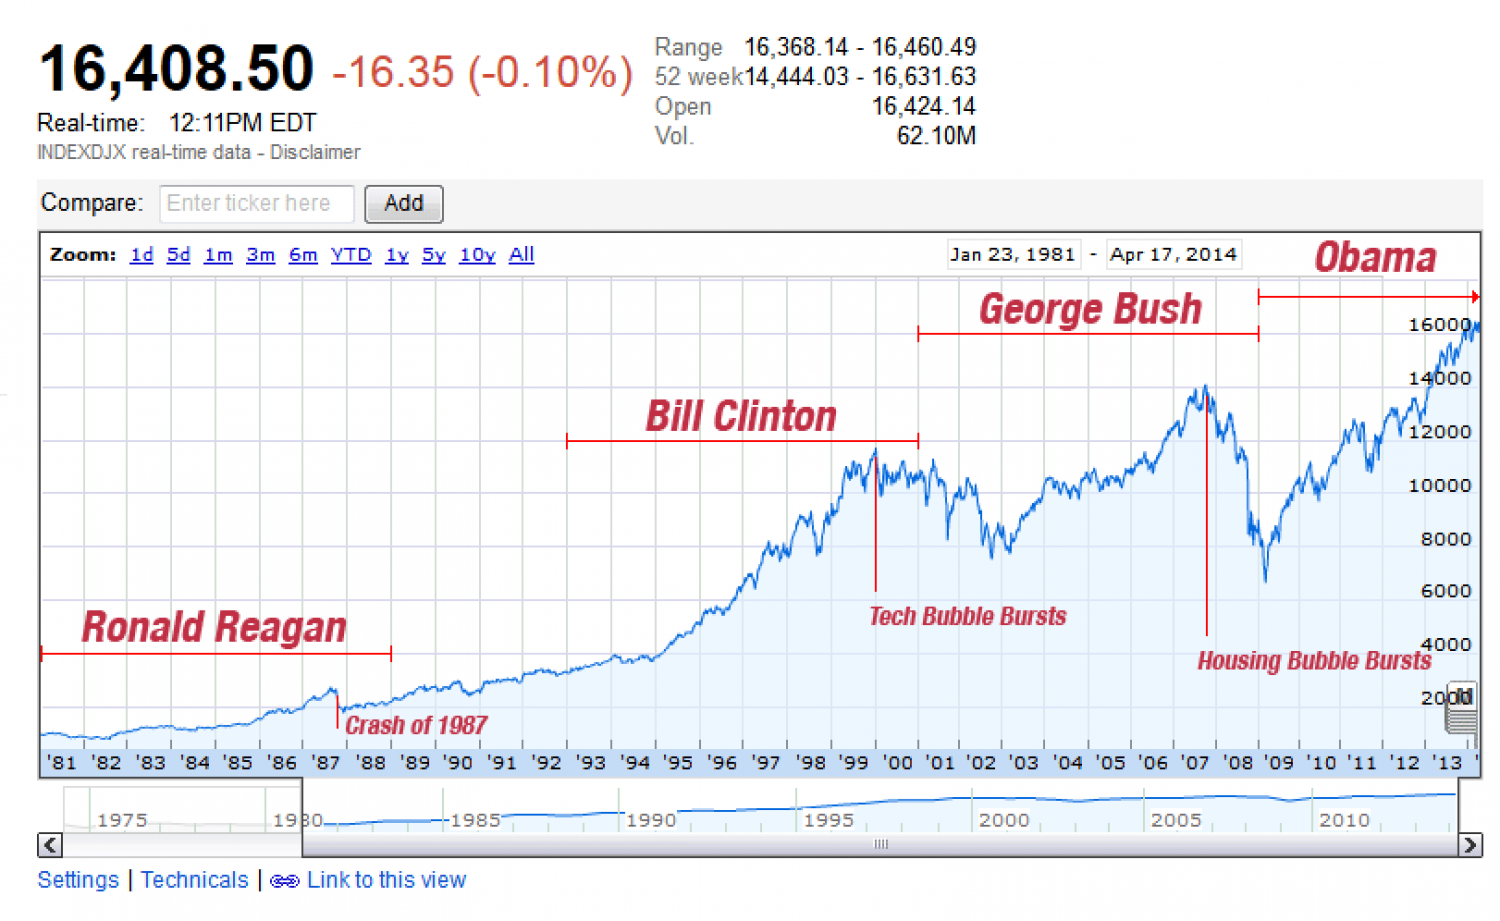 Why Do All The Recent 8 Year Term Presidents Have Stock Market Crashes One Year Before Their Exit? Infographic